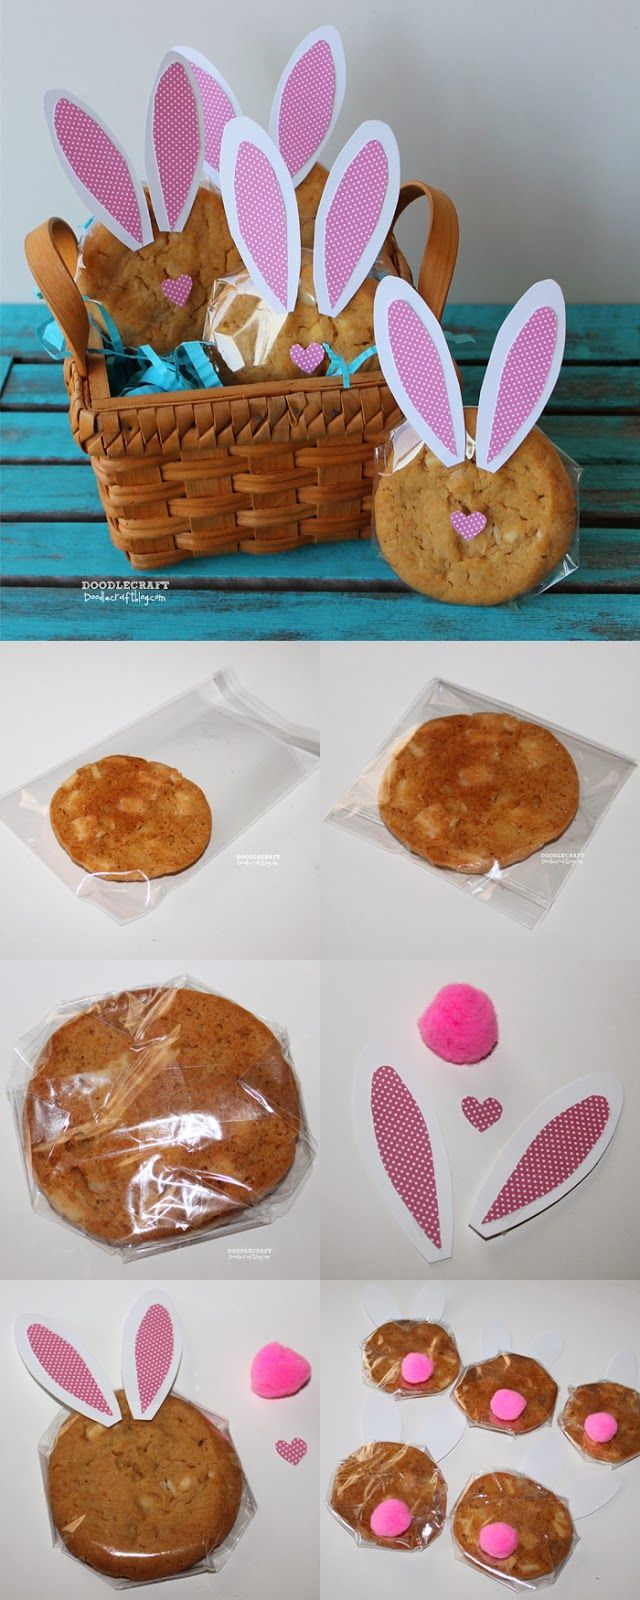 Cookies Bunny Ear Cutouts A Basket Cellophane And Fuzzy Tail Youre All Set For Easter Thanks Doodlecraft